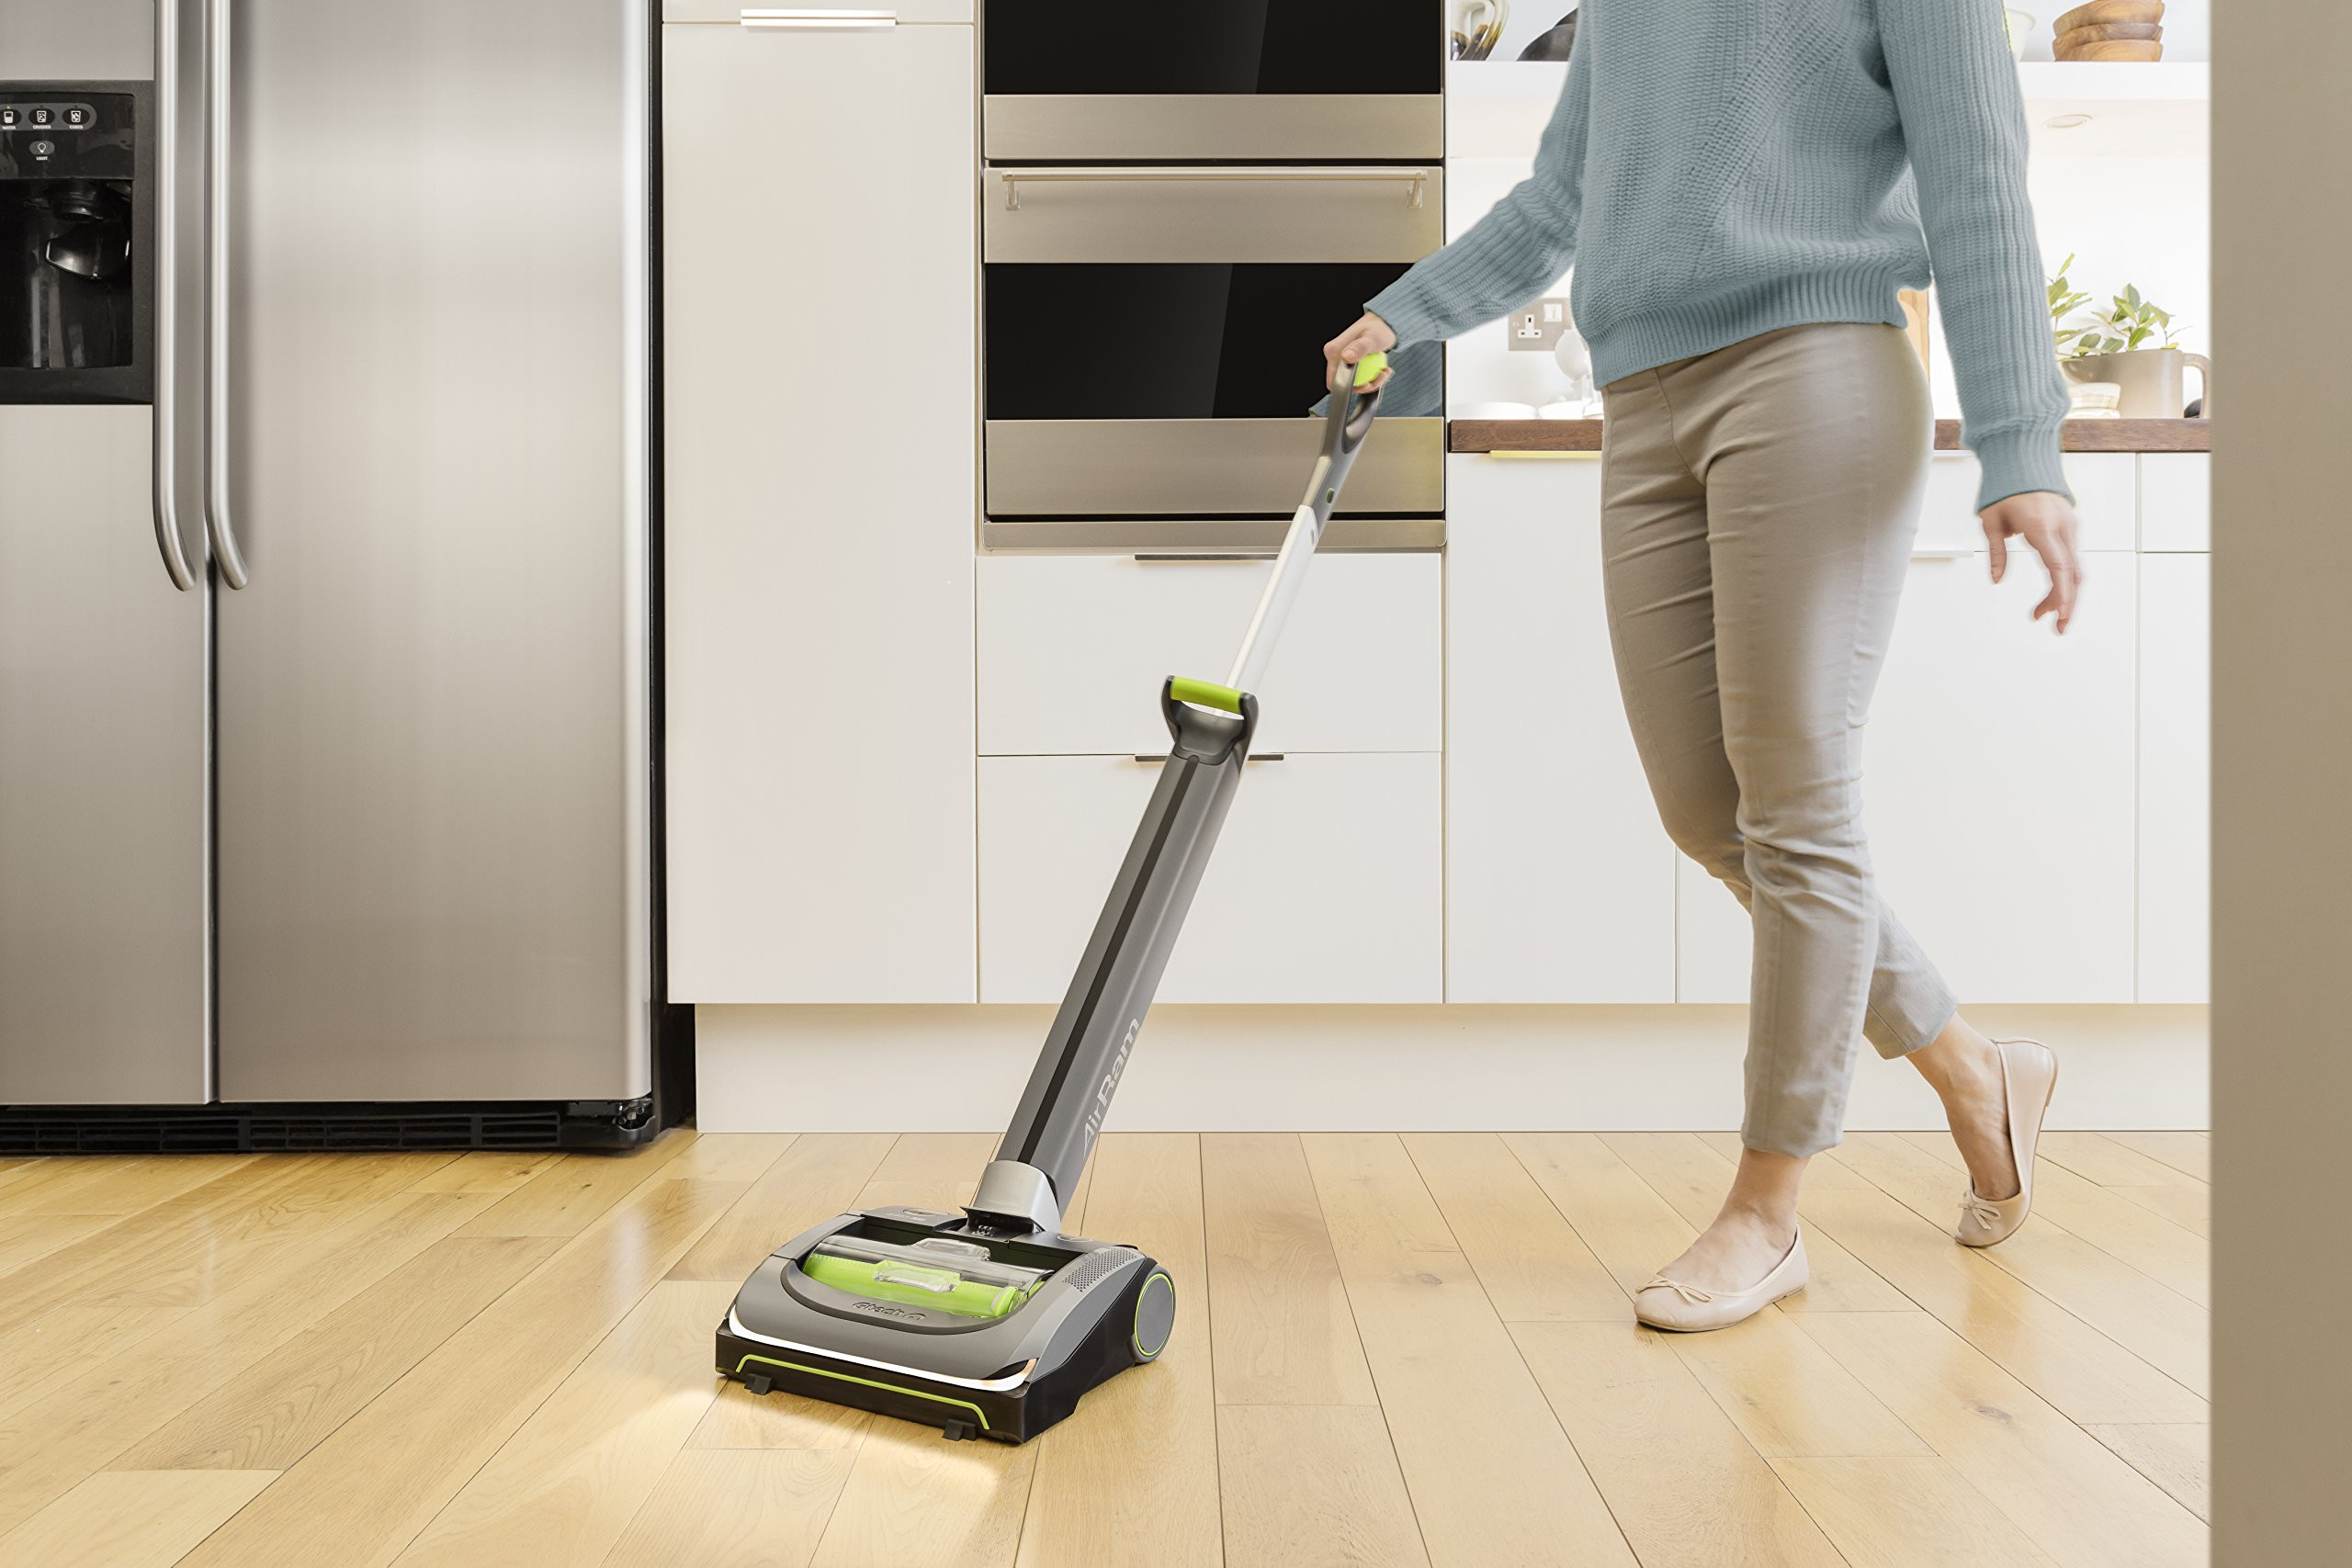 hardwood floor cleaning companies near me of vacuum and floor care shop amazon uk inside vacuum cleaners